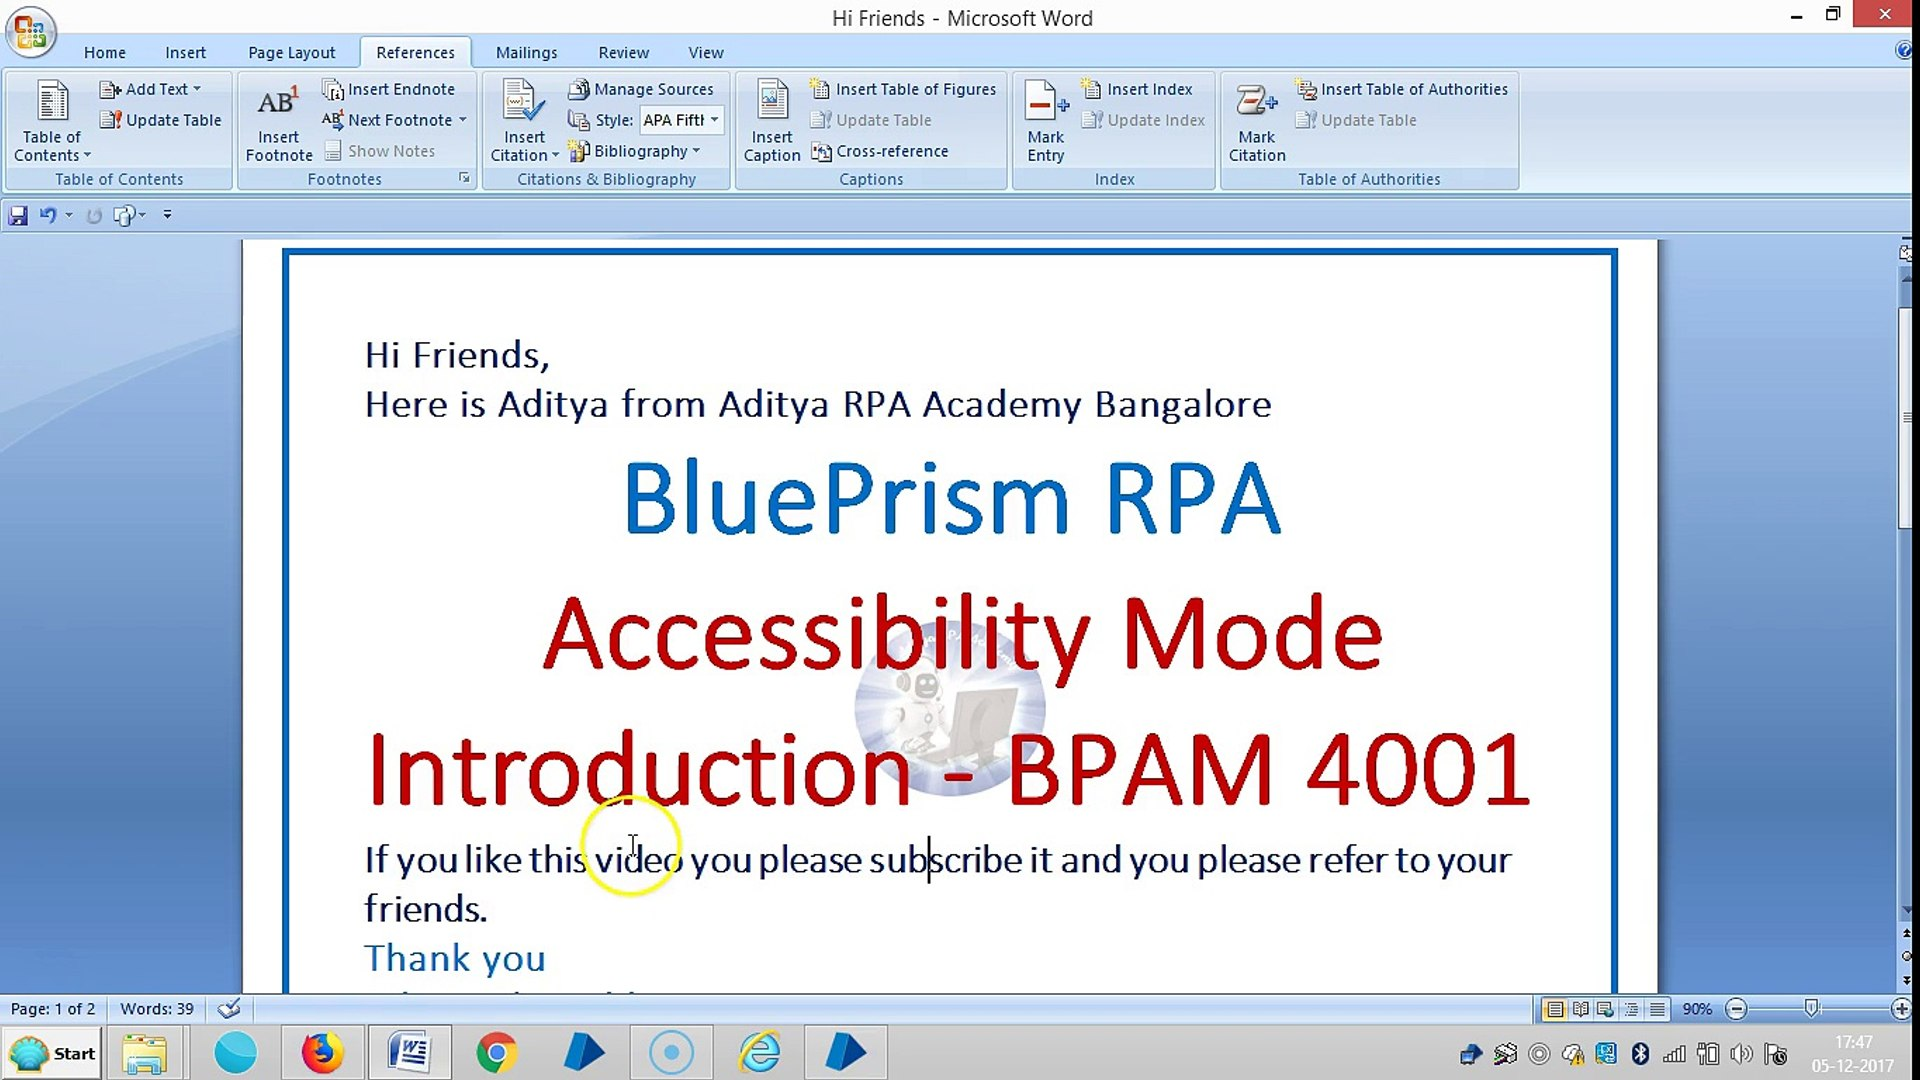 BluePrism-Accessibility Mode-Introduction-BPAM 4001-Aditya RPA Academy